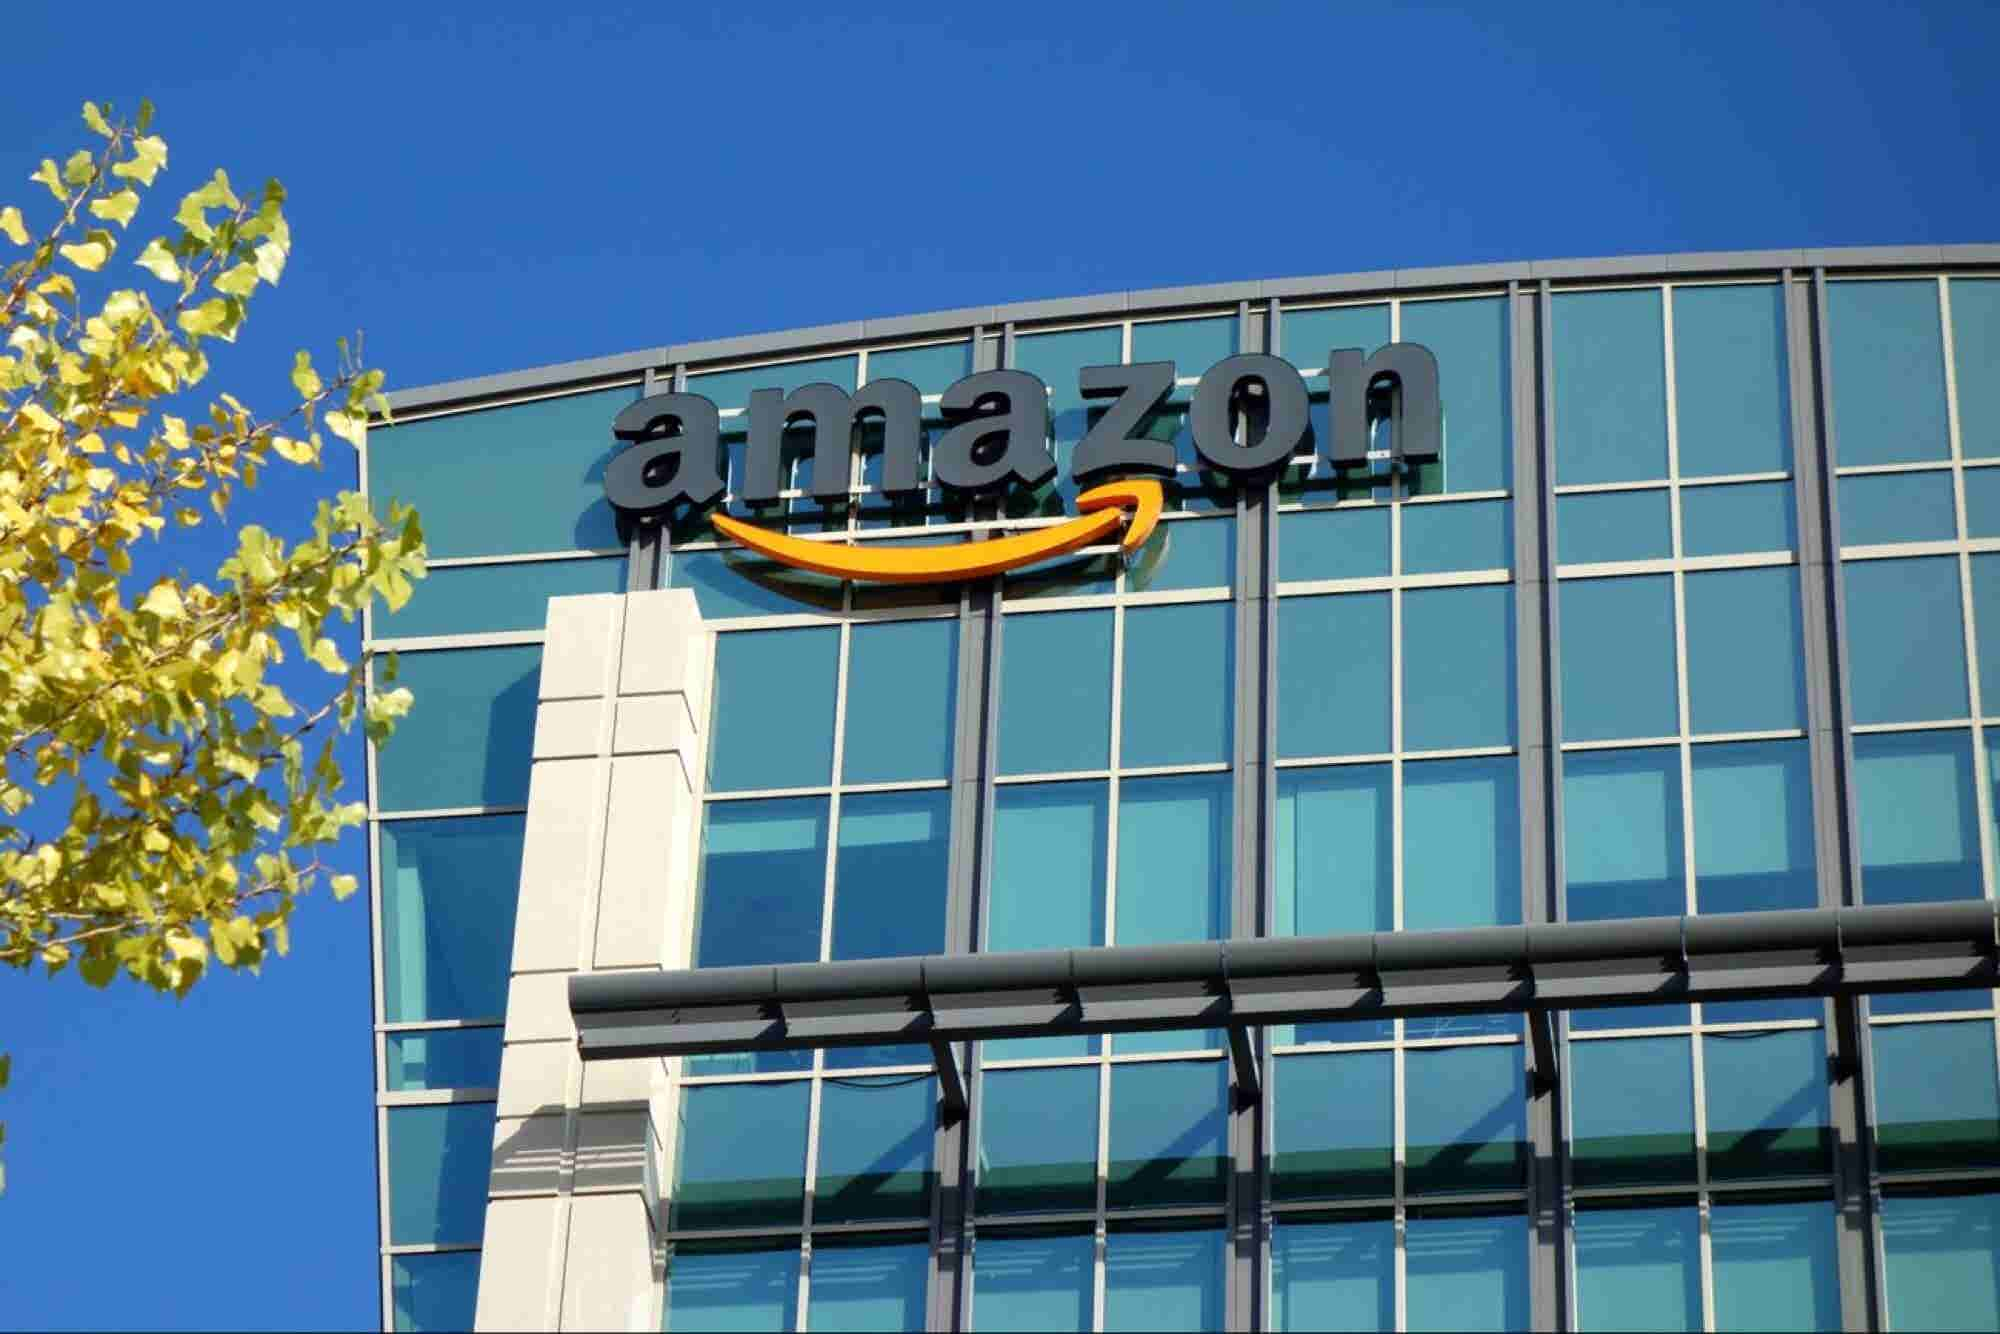 4 Obvious Pros and 4 Disconcerting Cons for Whatever City Wins Amazon's HQ2